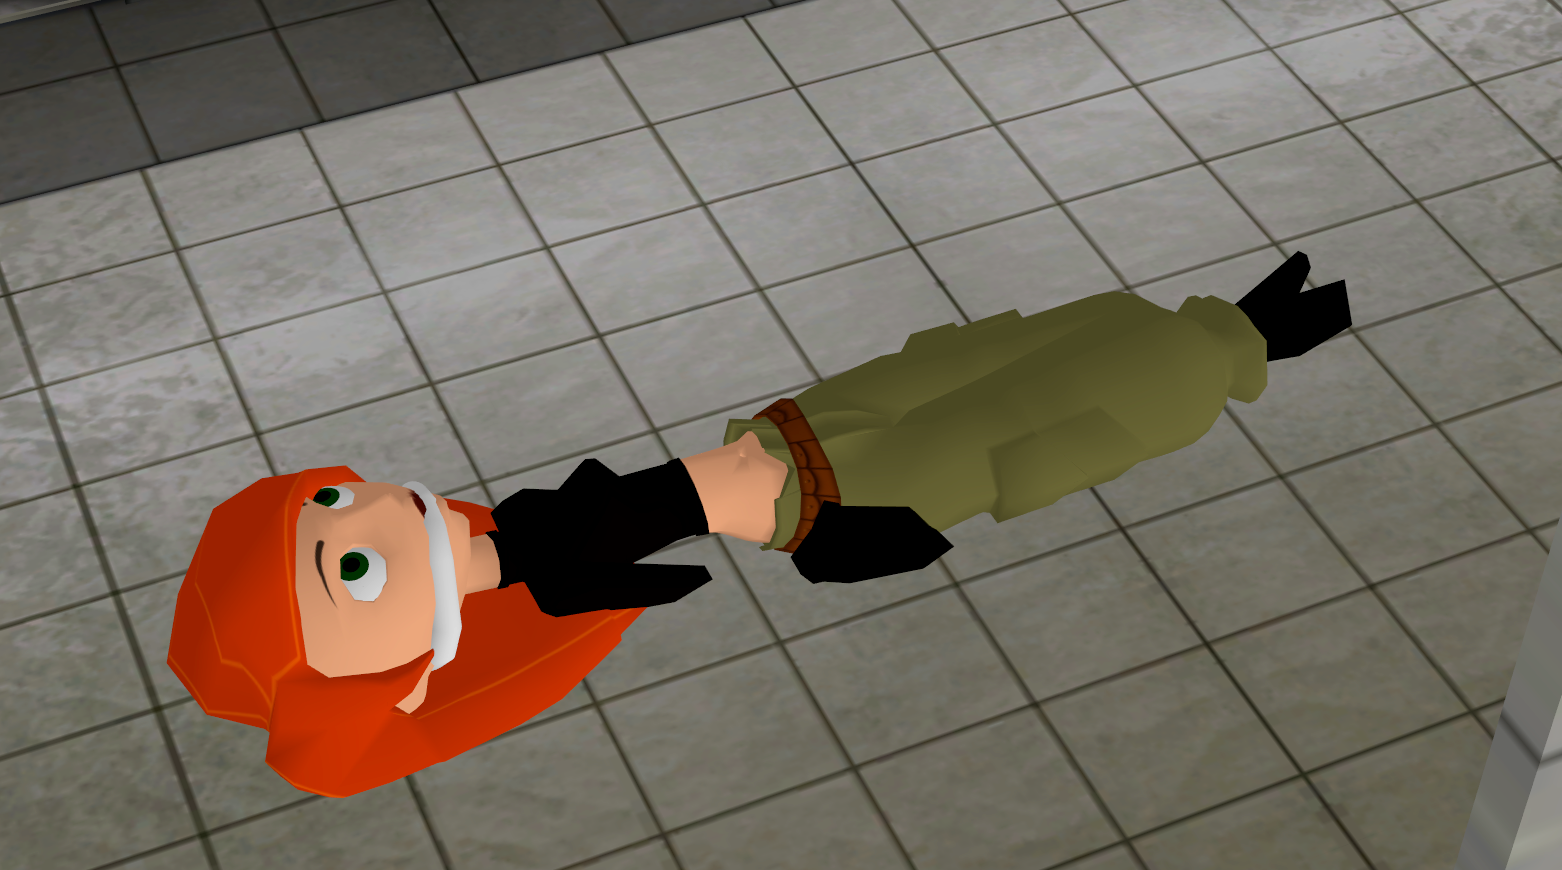 kim possible tied up 4 by benja100 d5fbzd9 Mature Content Filter is On (Contains: sexual themes)